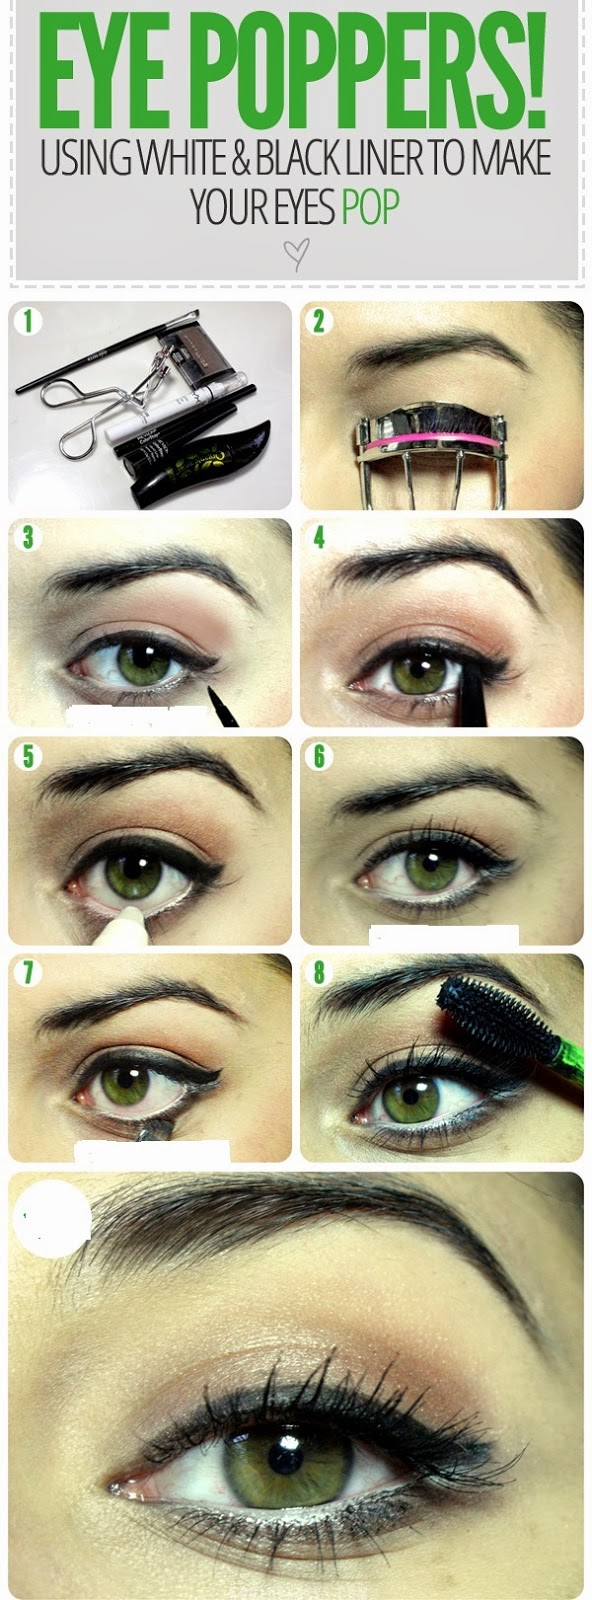 EYE POPPERS ! USING WHITE AND BLACK LINER TO MAKE YOUR EYES POP.